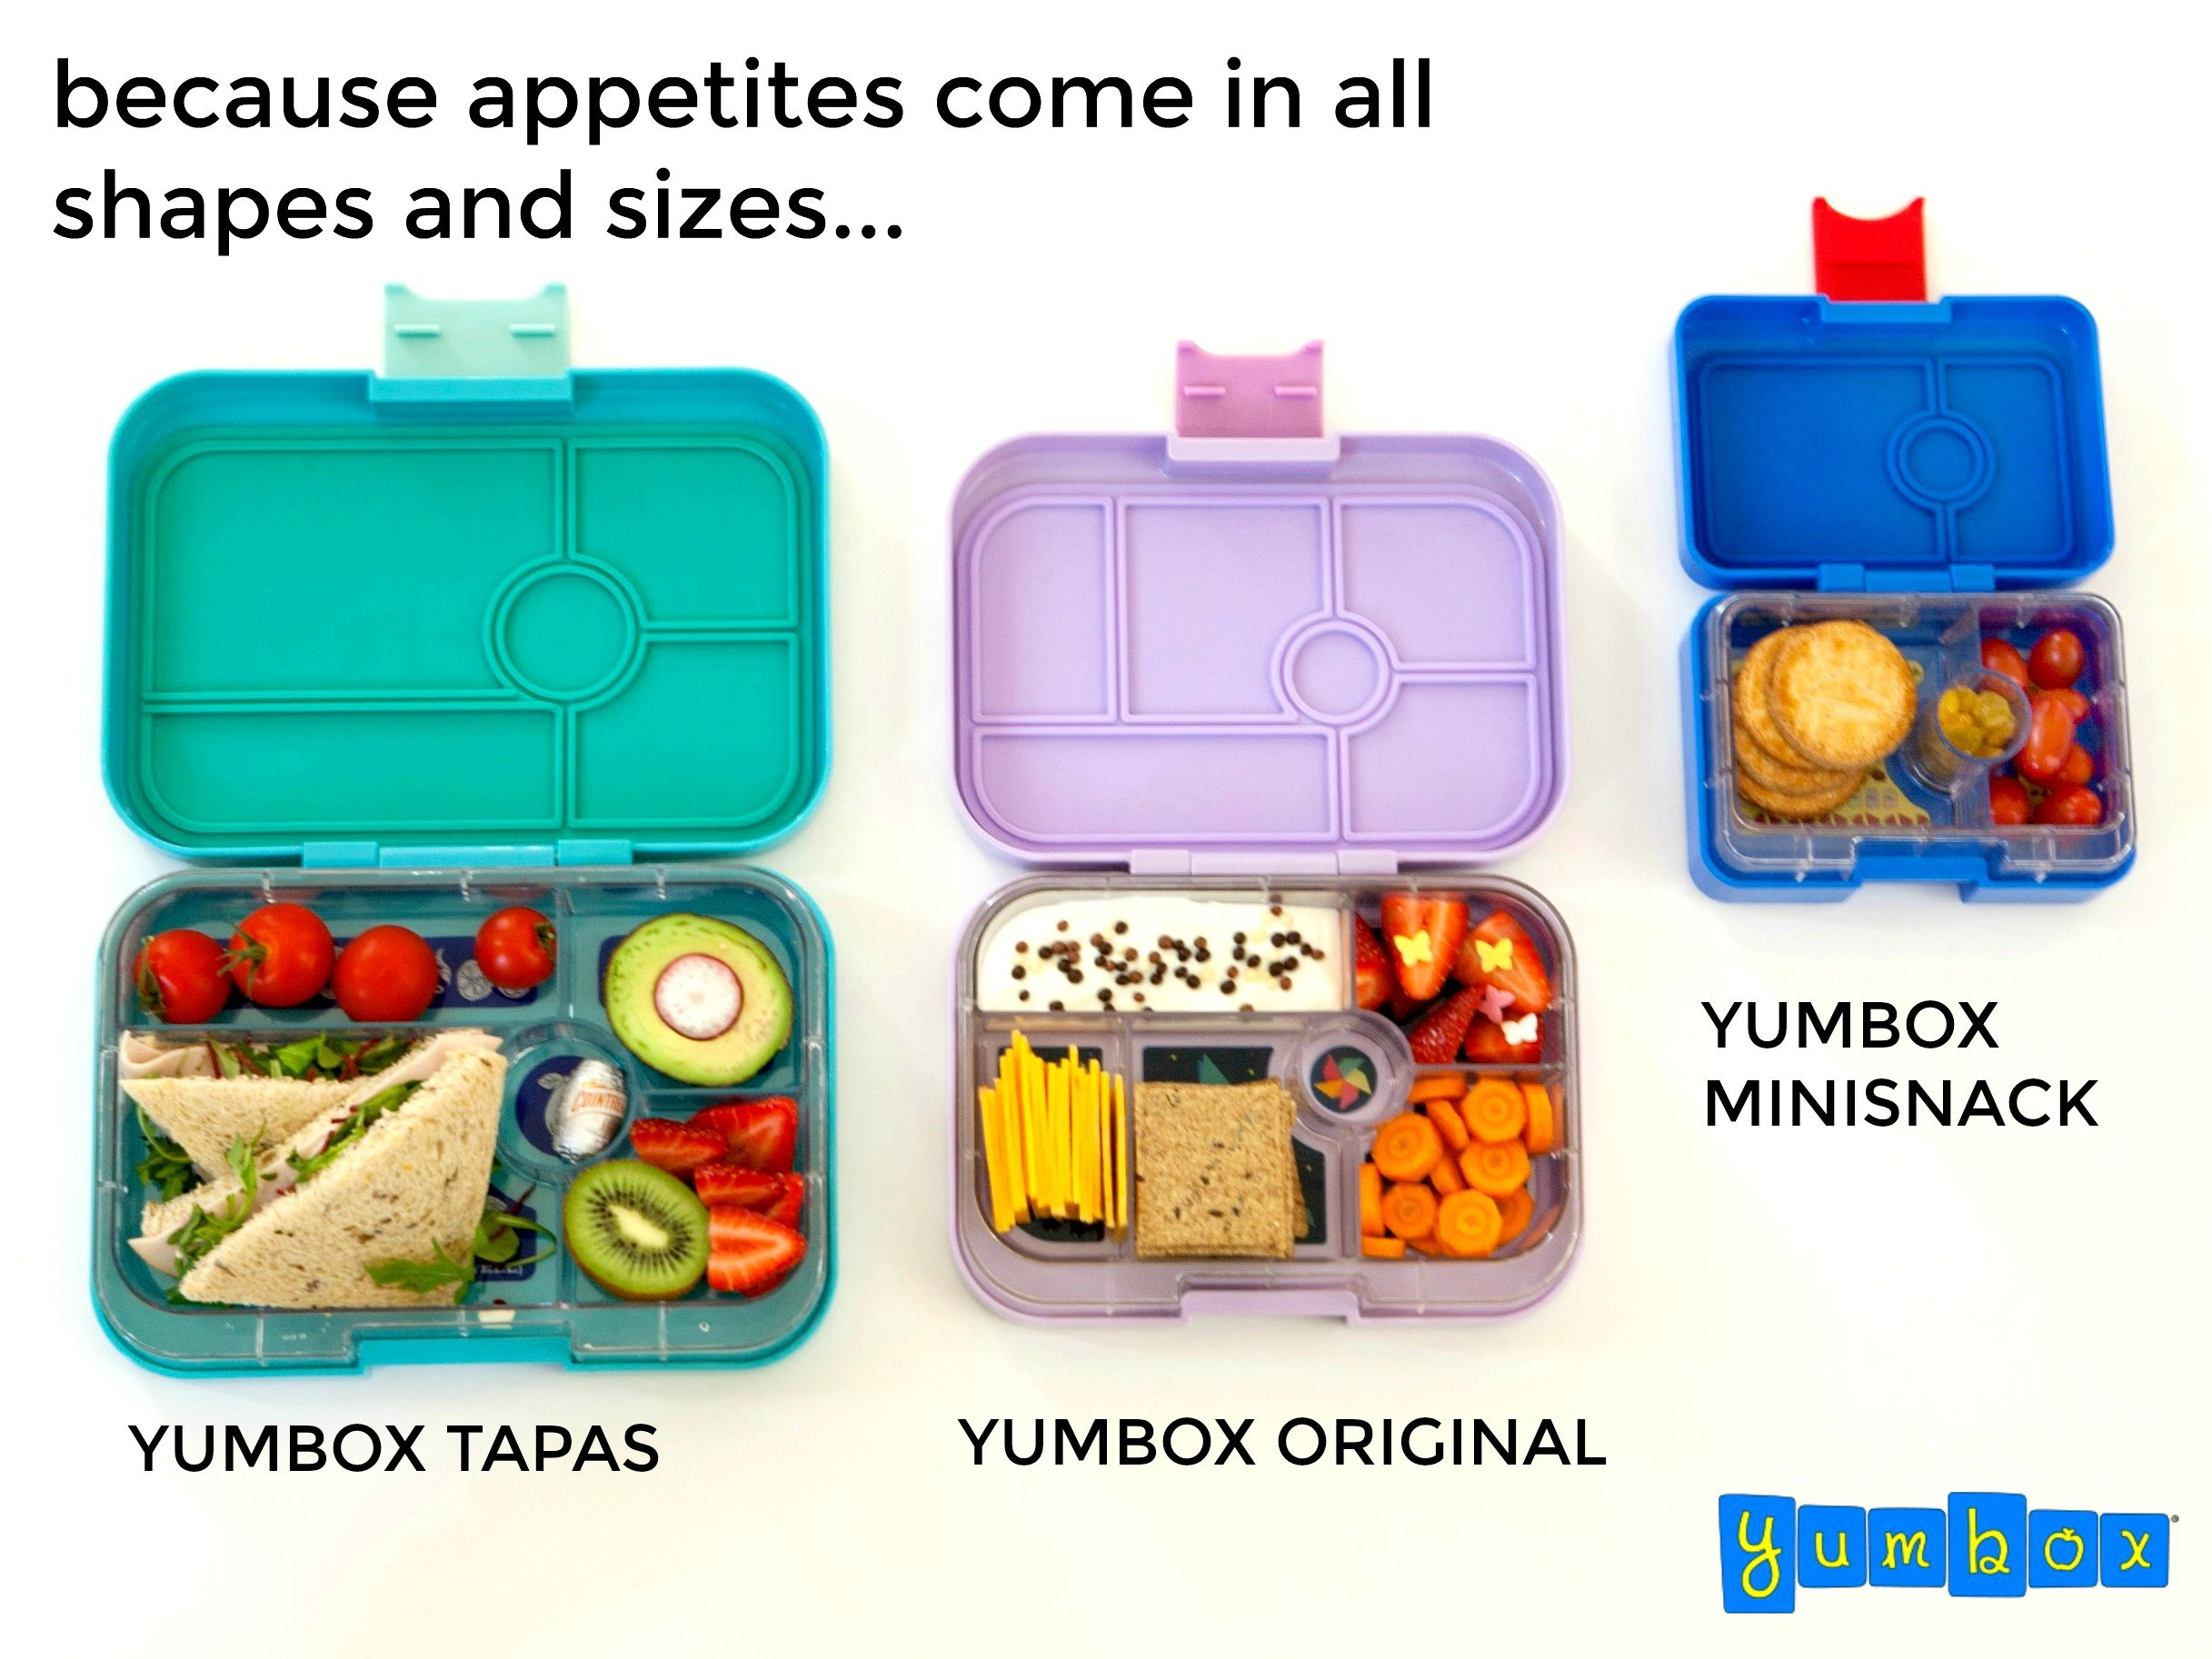 galleon yumbox tapas larger size portofino blue leakproof bento lunch box for adults teens. Black Bedroom Furniture Sets. Home Design Ideas